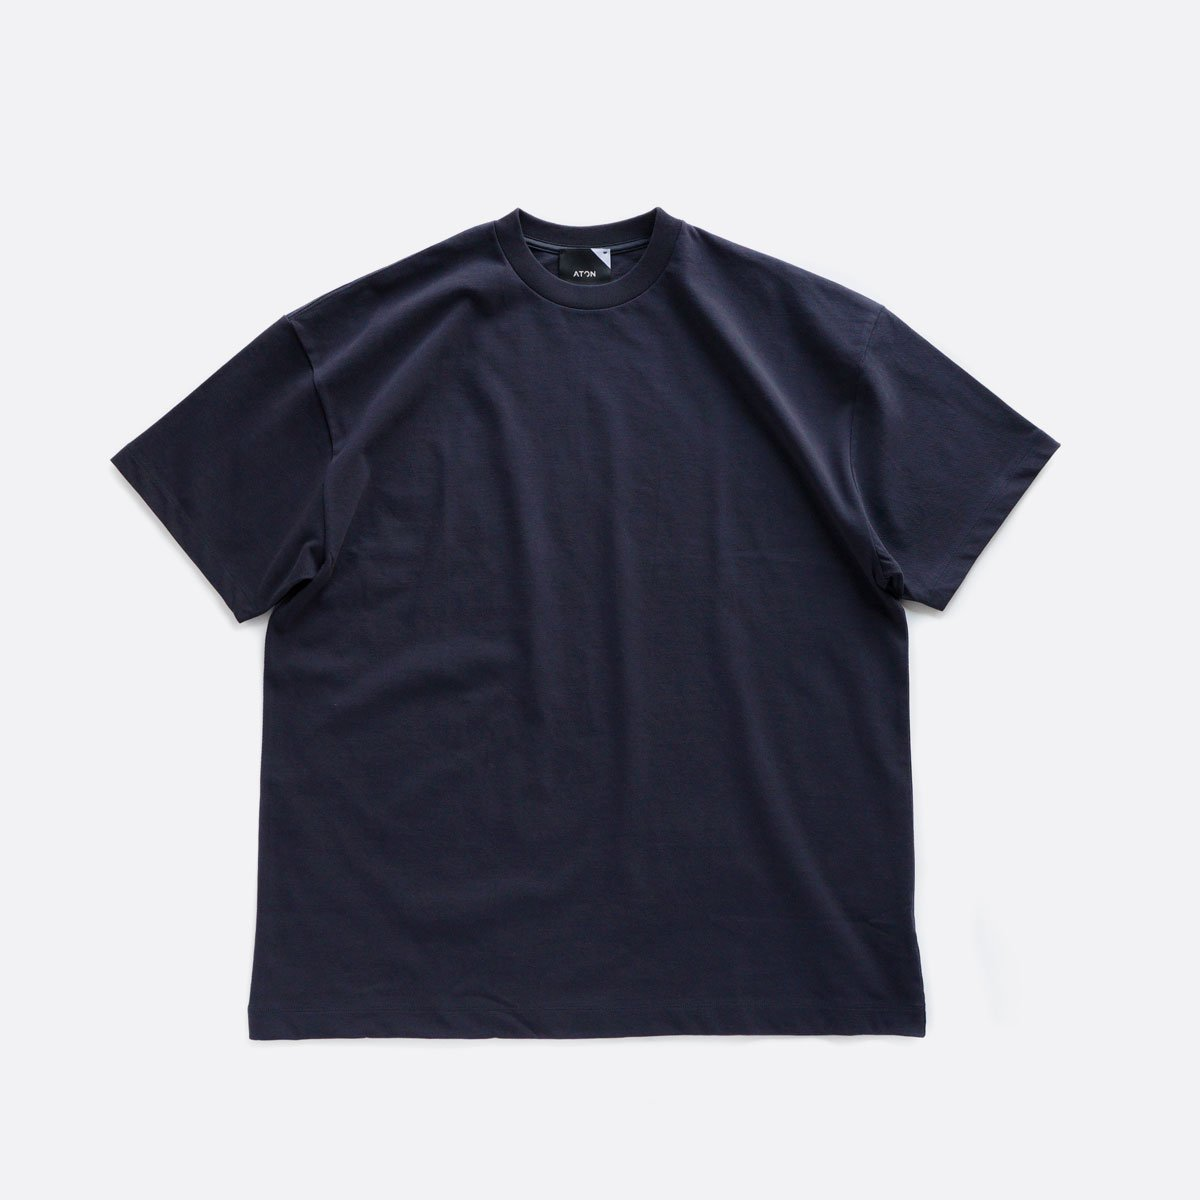 ATON FRESCA PLATE OVERSIZED T-SHIRT (NAVY)